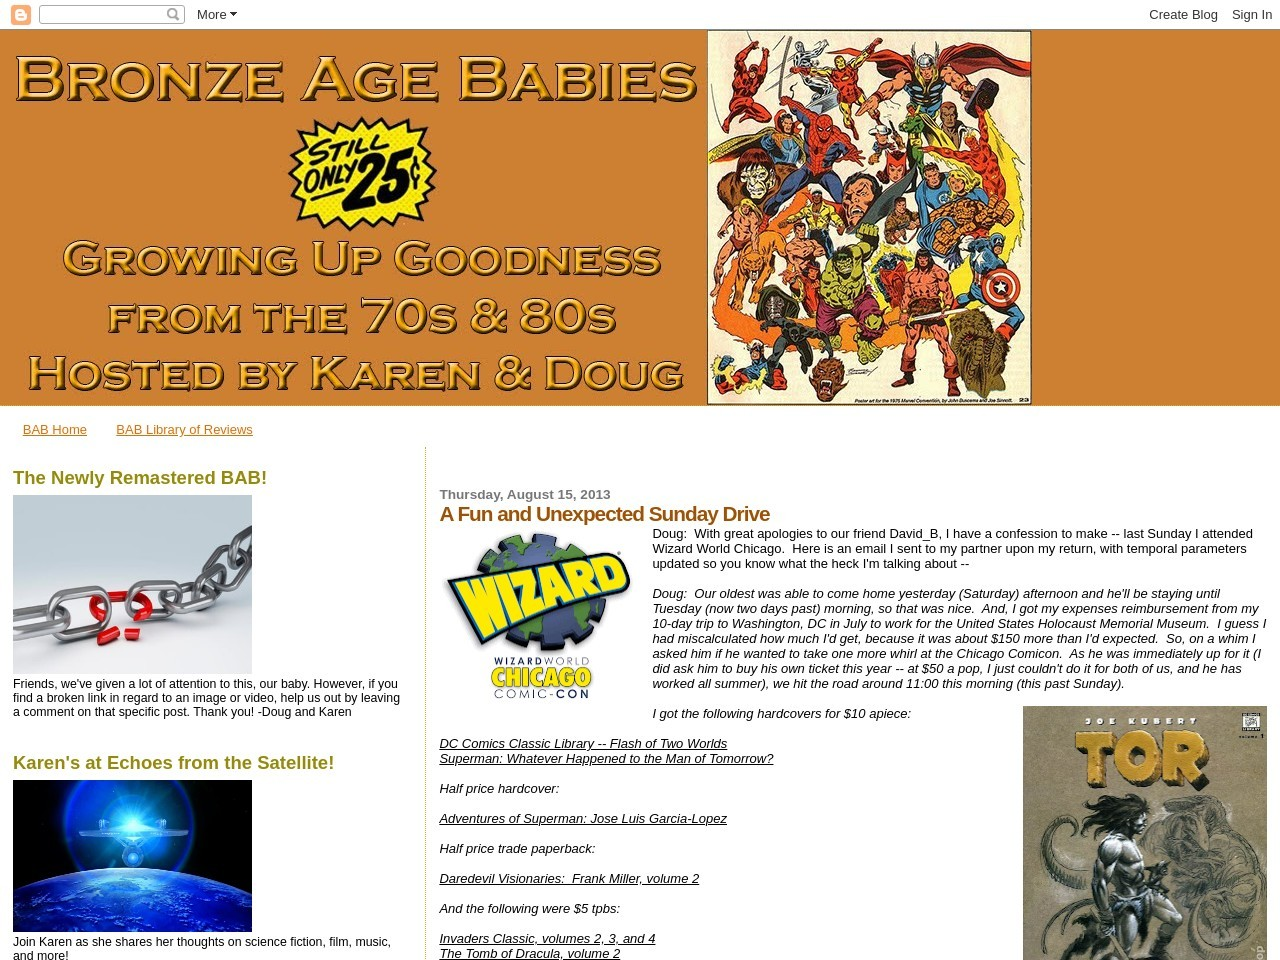 Bronze Age Babies: A Fun and Unexpected Sunday Drive